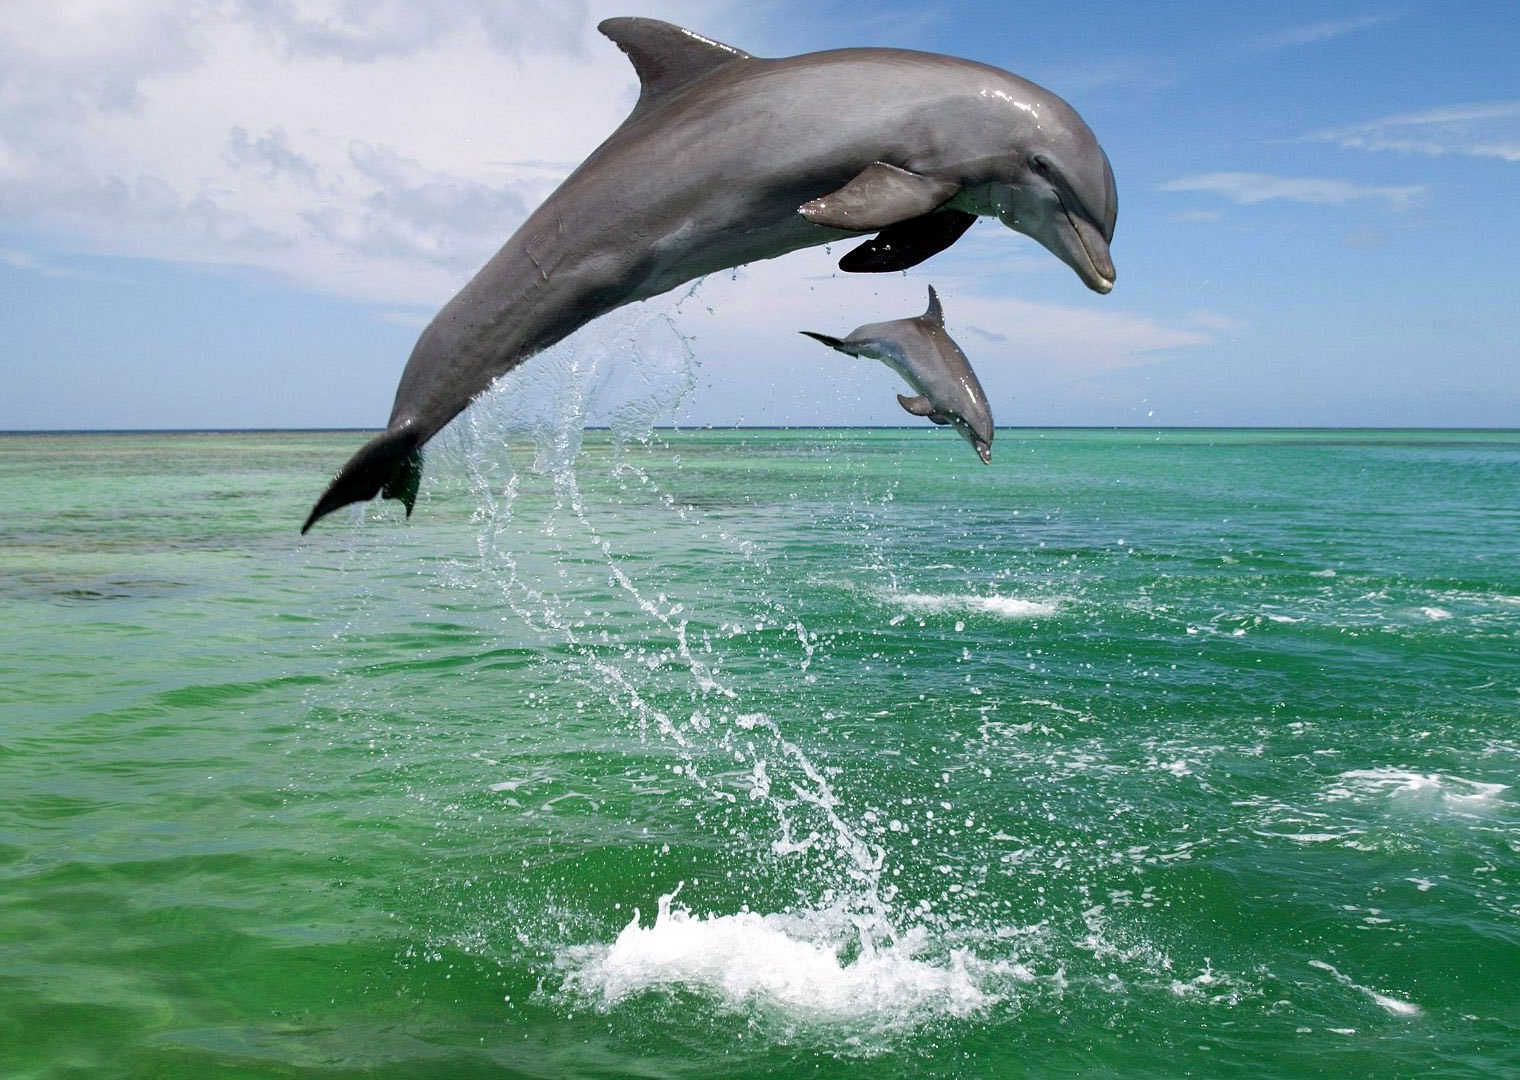 dolphin fish hd wallpapers.jpg - Wallpaperss HD